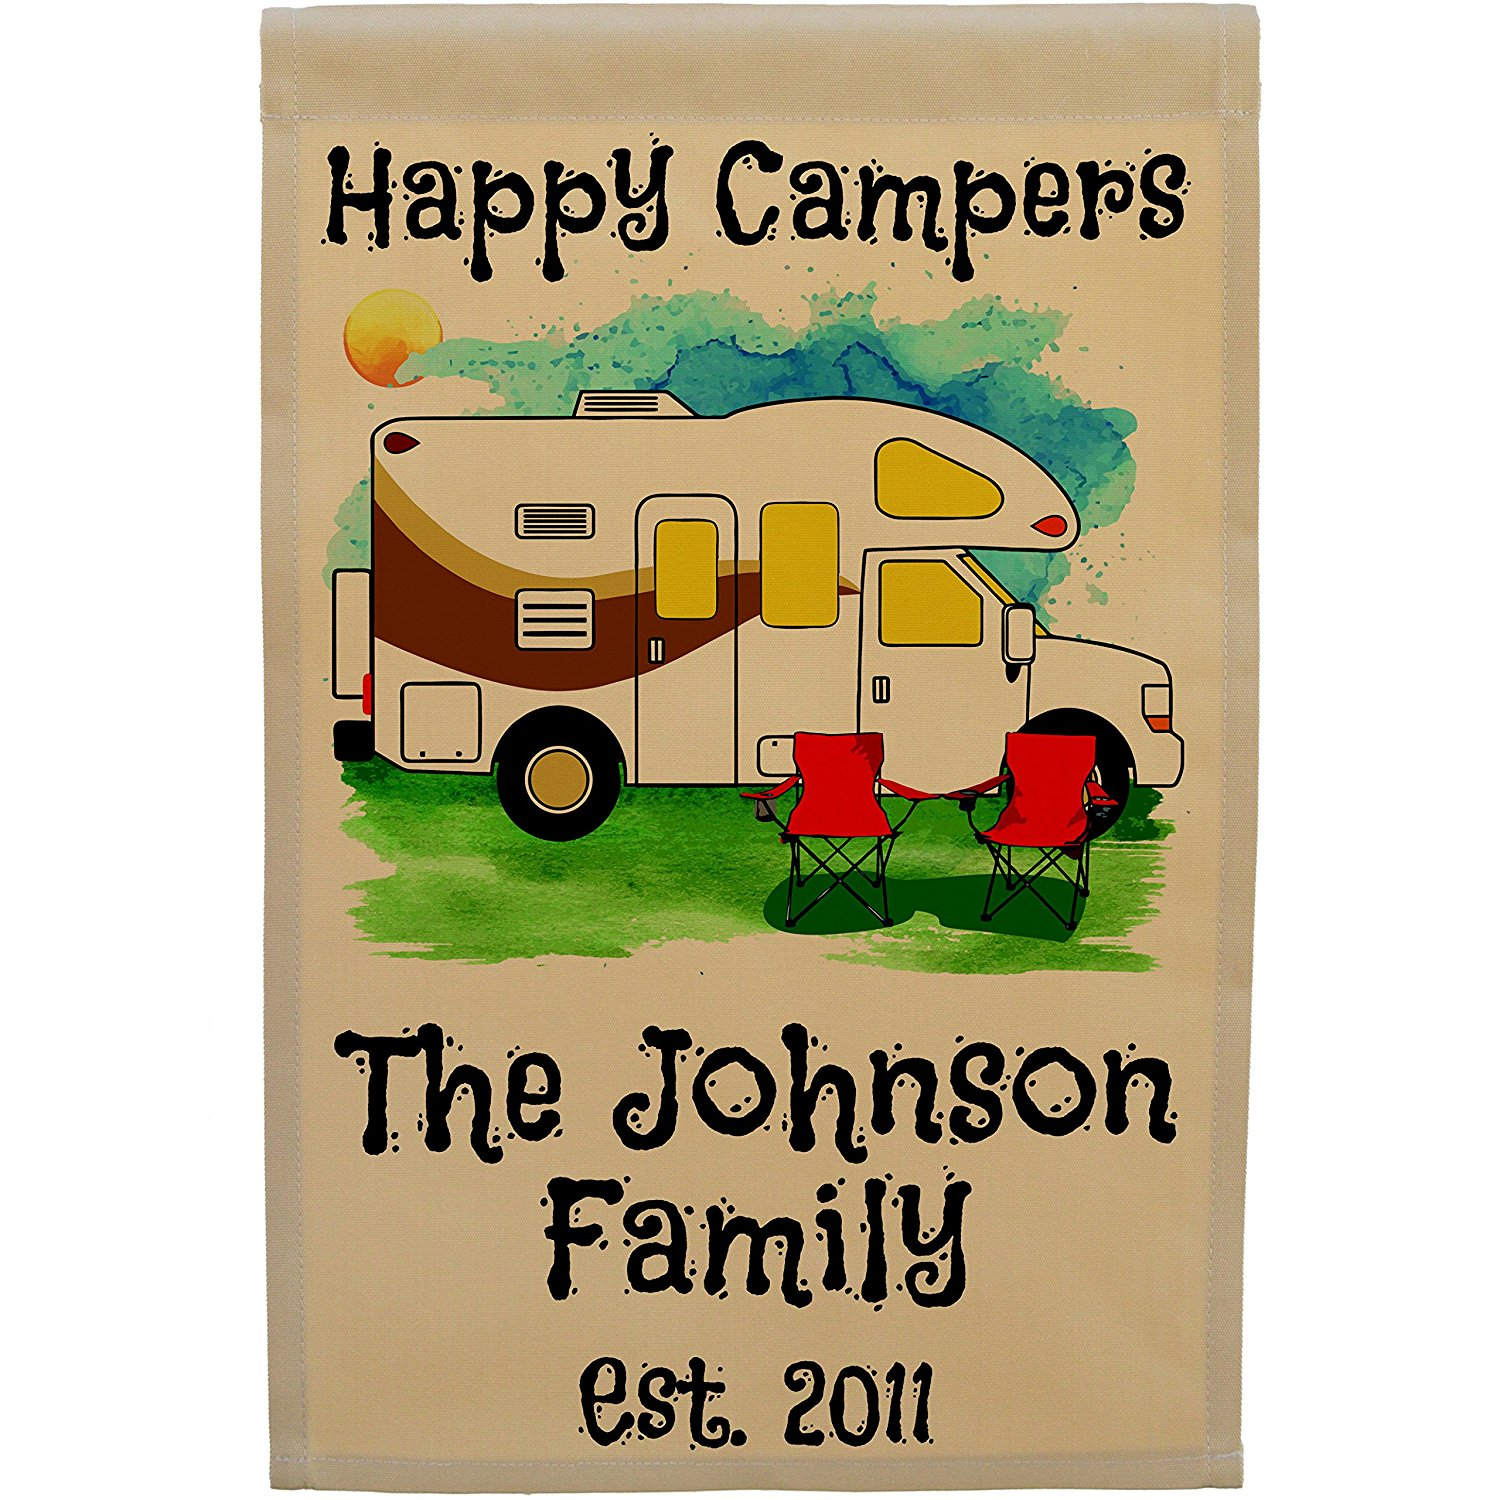 Personalized Happy Campers Class C Motorhome Camping Flag, Watercolor Design (Tan Fabric, Brown Trim Color)